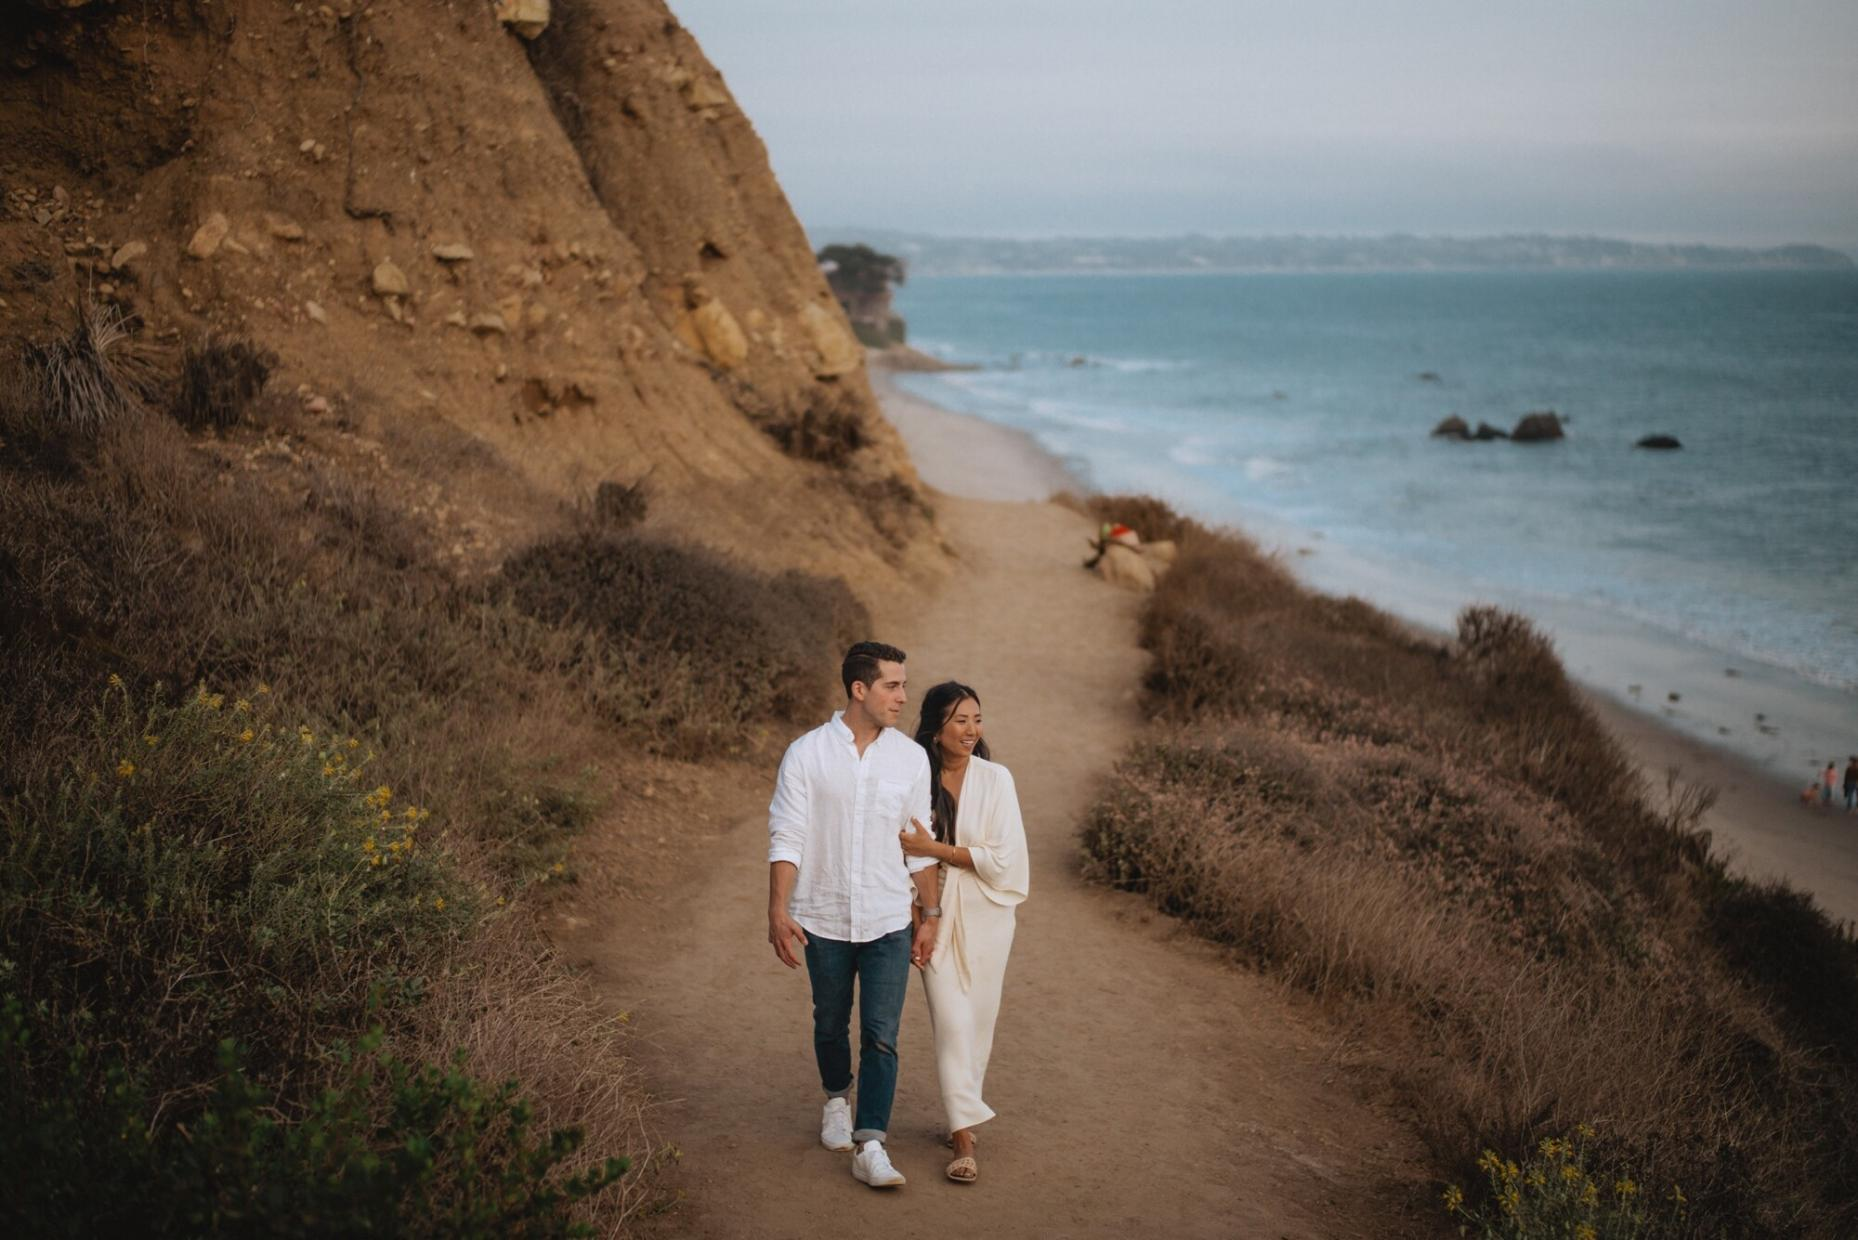 malibu proposal ideas photo, los angeles oceanside proposal photographer